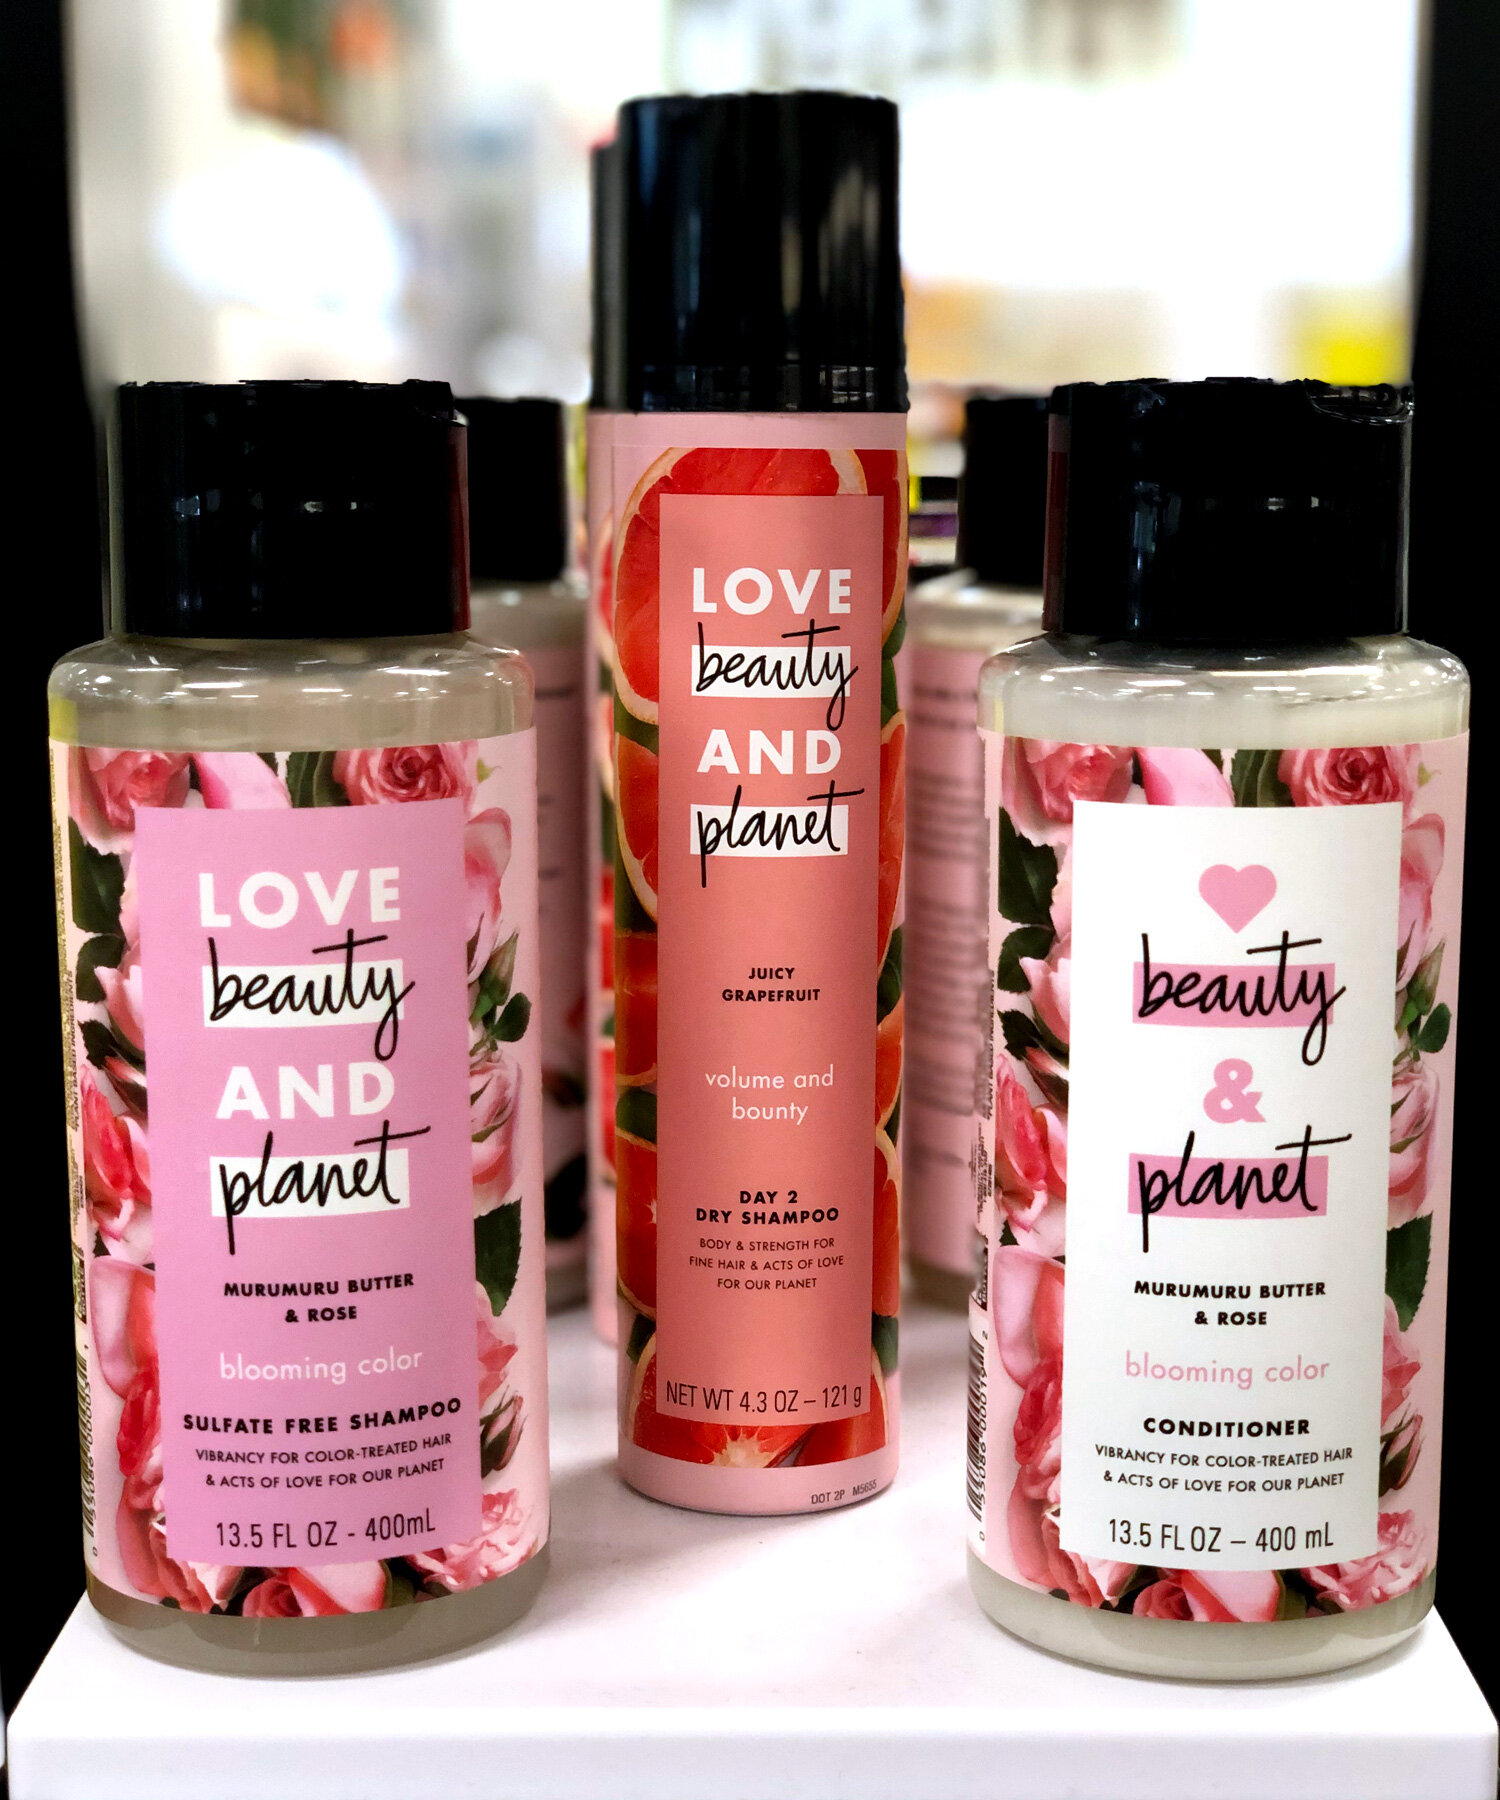 SAVE on Love, Beauty and Planet at CVS